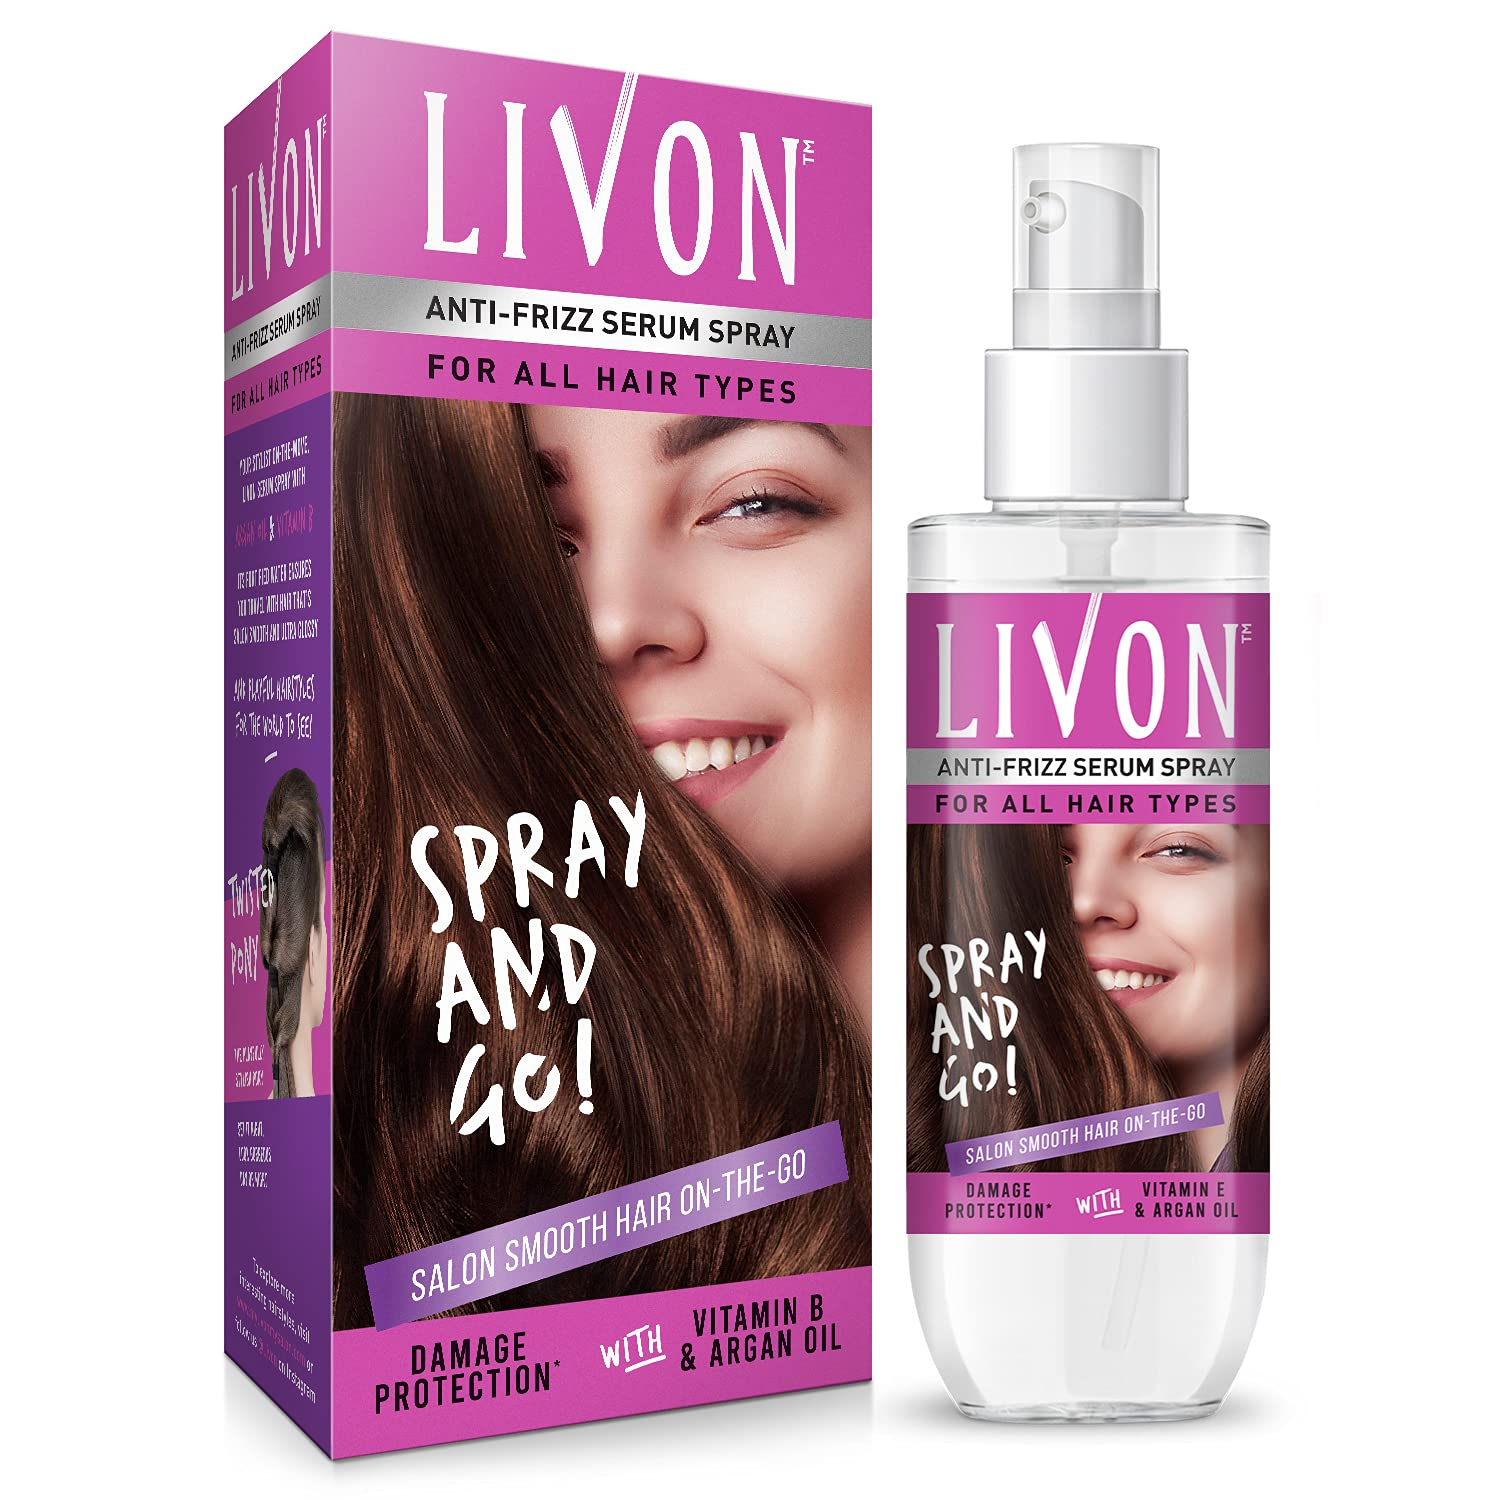 Livon Shake & Spray Serum for Women,For Frizz-free,Smooth & Glossy Hair on-the-go, 100 ml